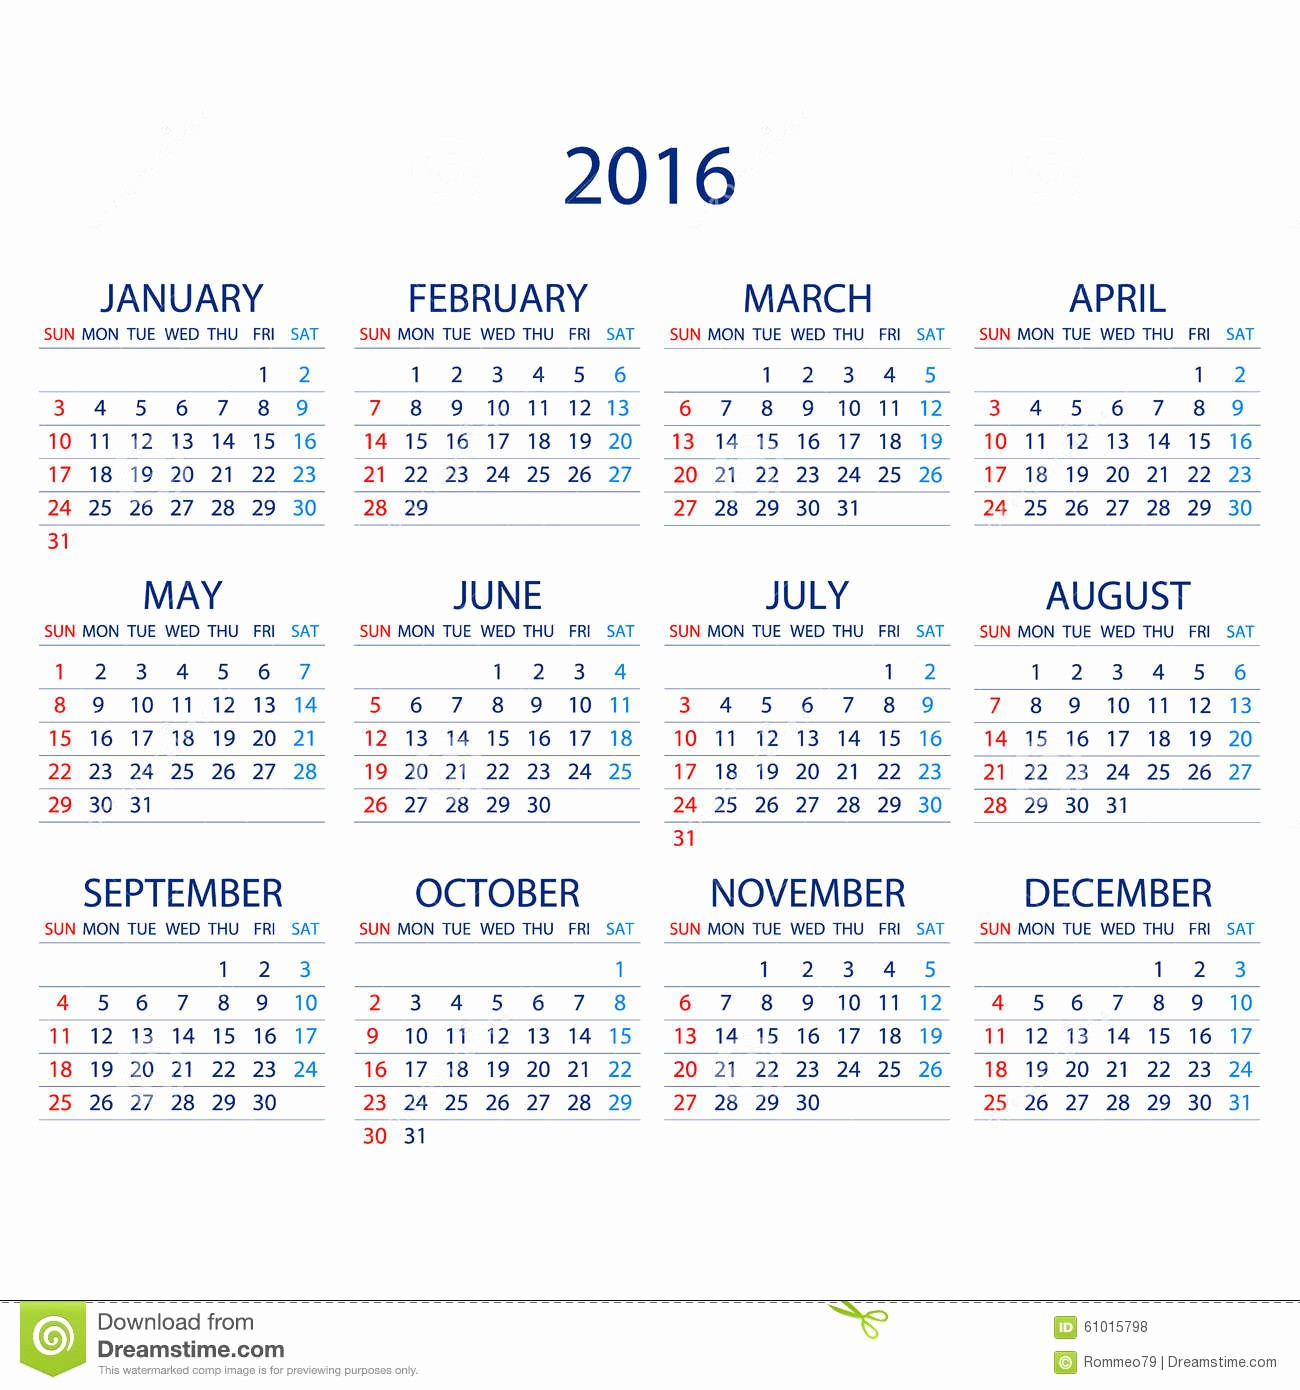 Weekly Calendar Starting with Monday New Calendar for 2016 White Background Week Starts Monday